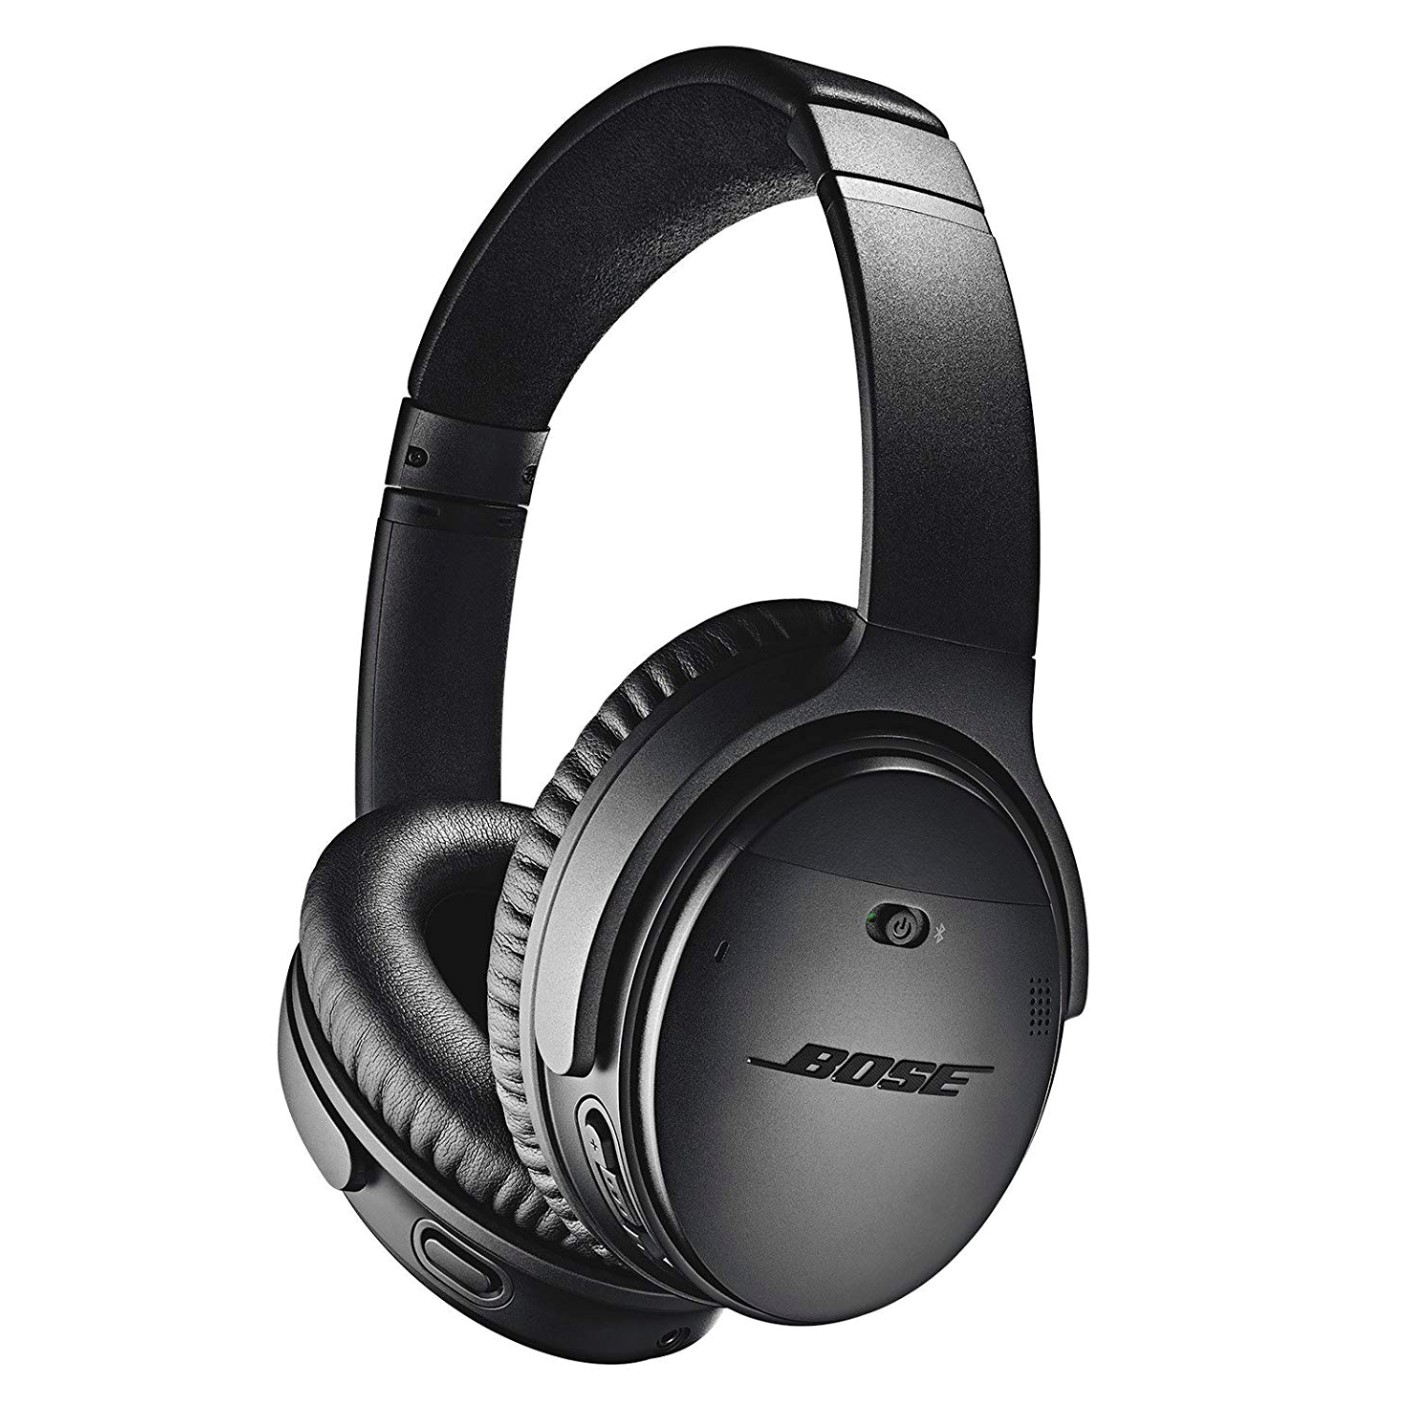 2019 holiday gift guide Bose QuietComfort 35 II Wireless Bluetooth Noise-Cancelling Headphones